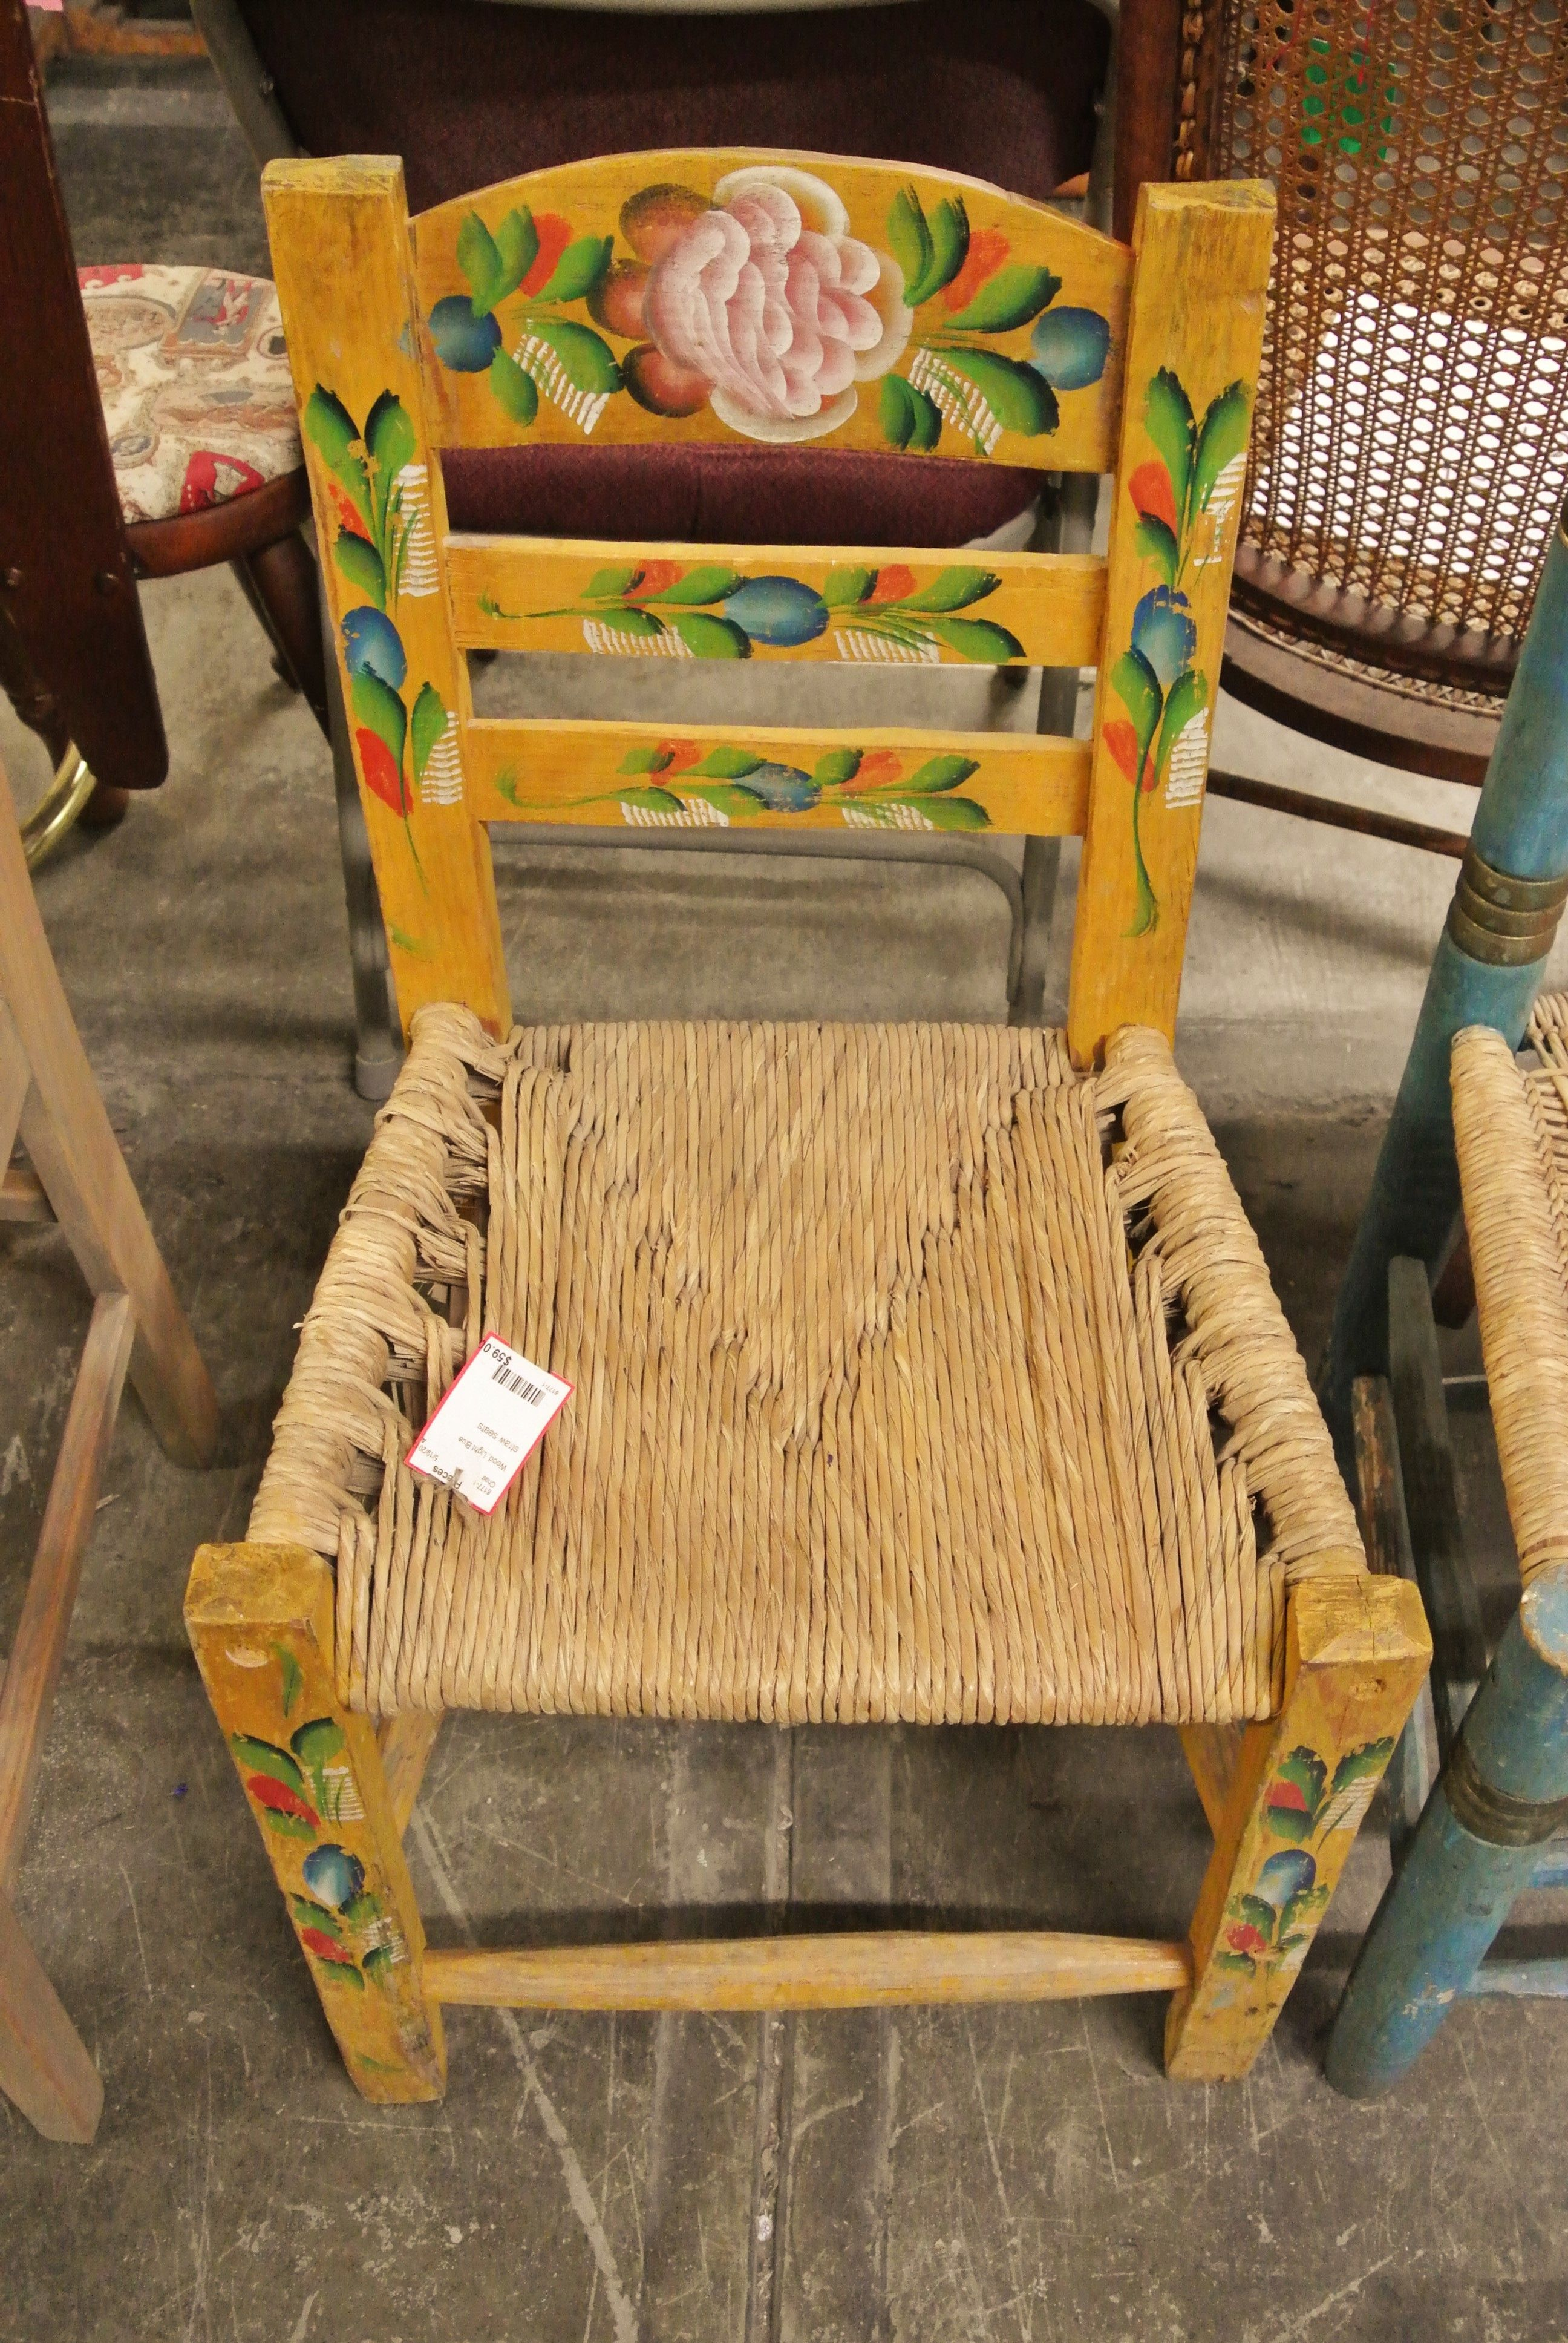 Pieces taos antique yellow chair pieces